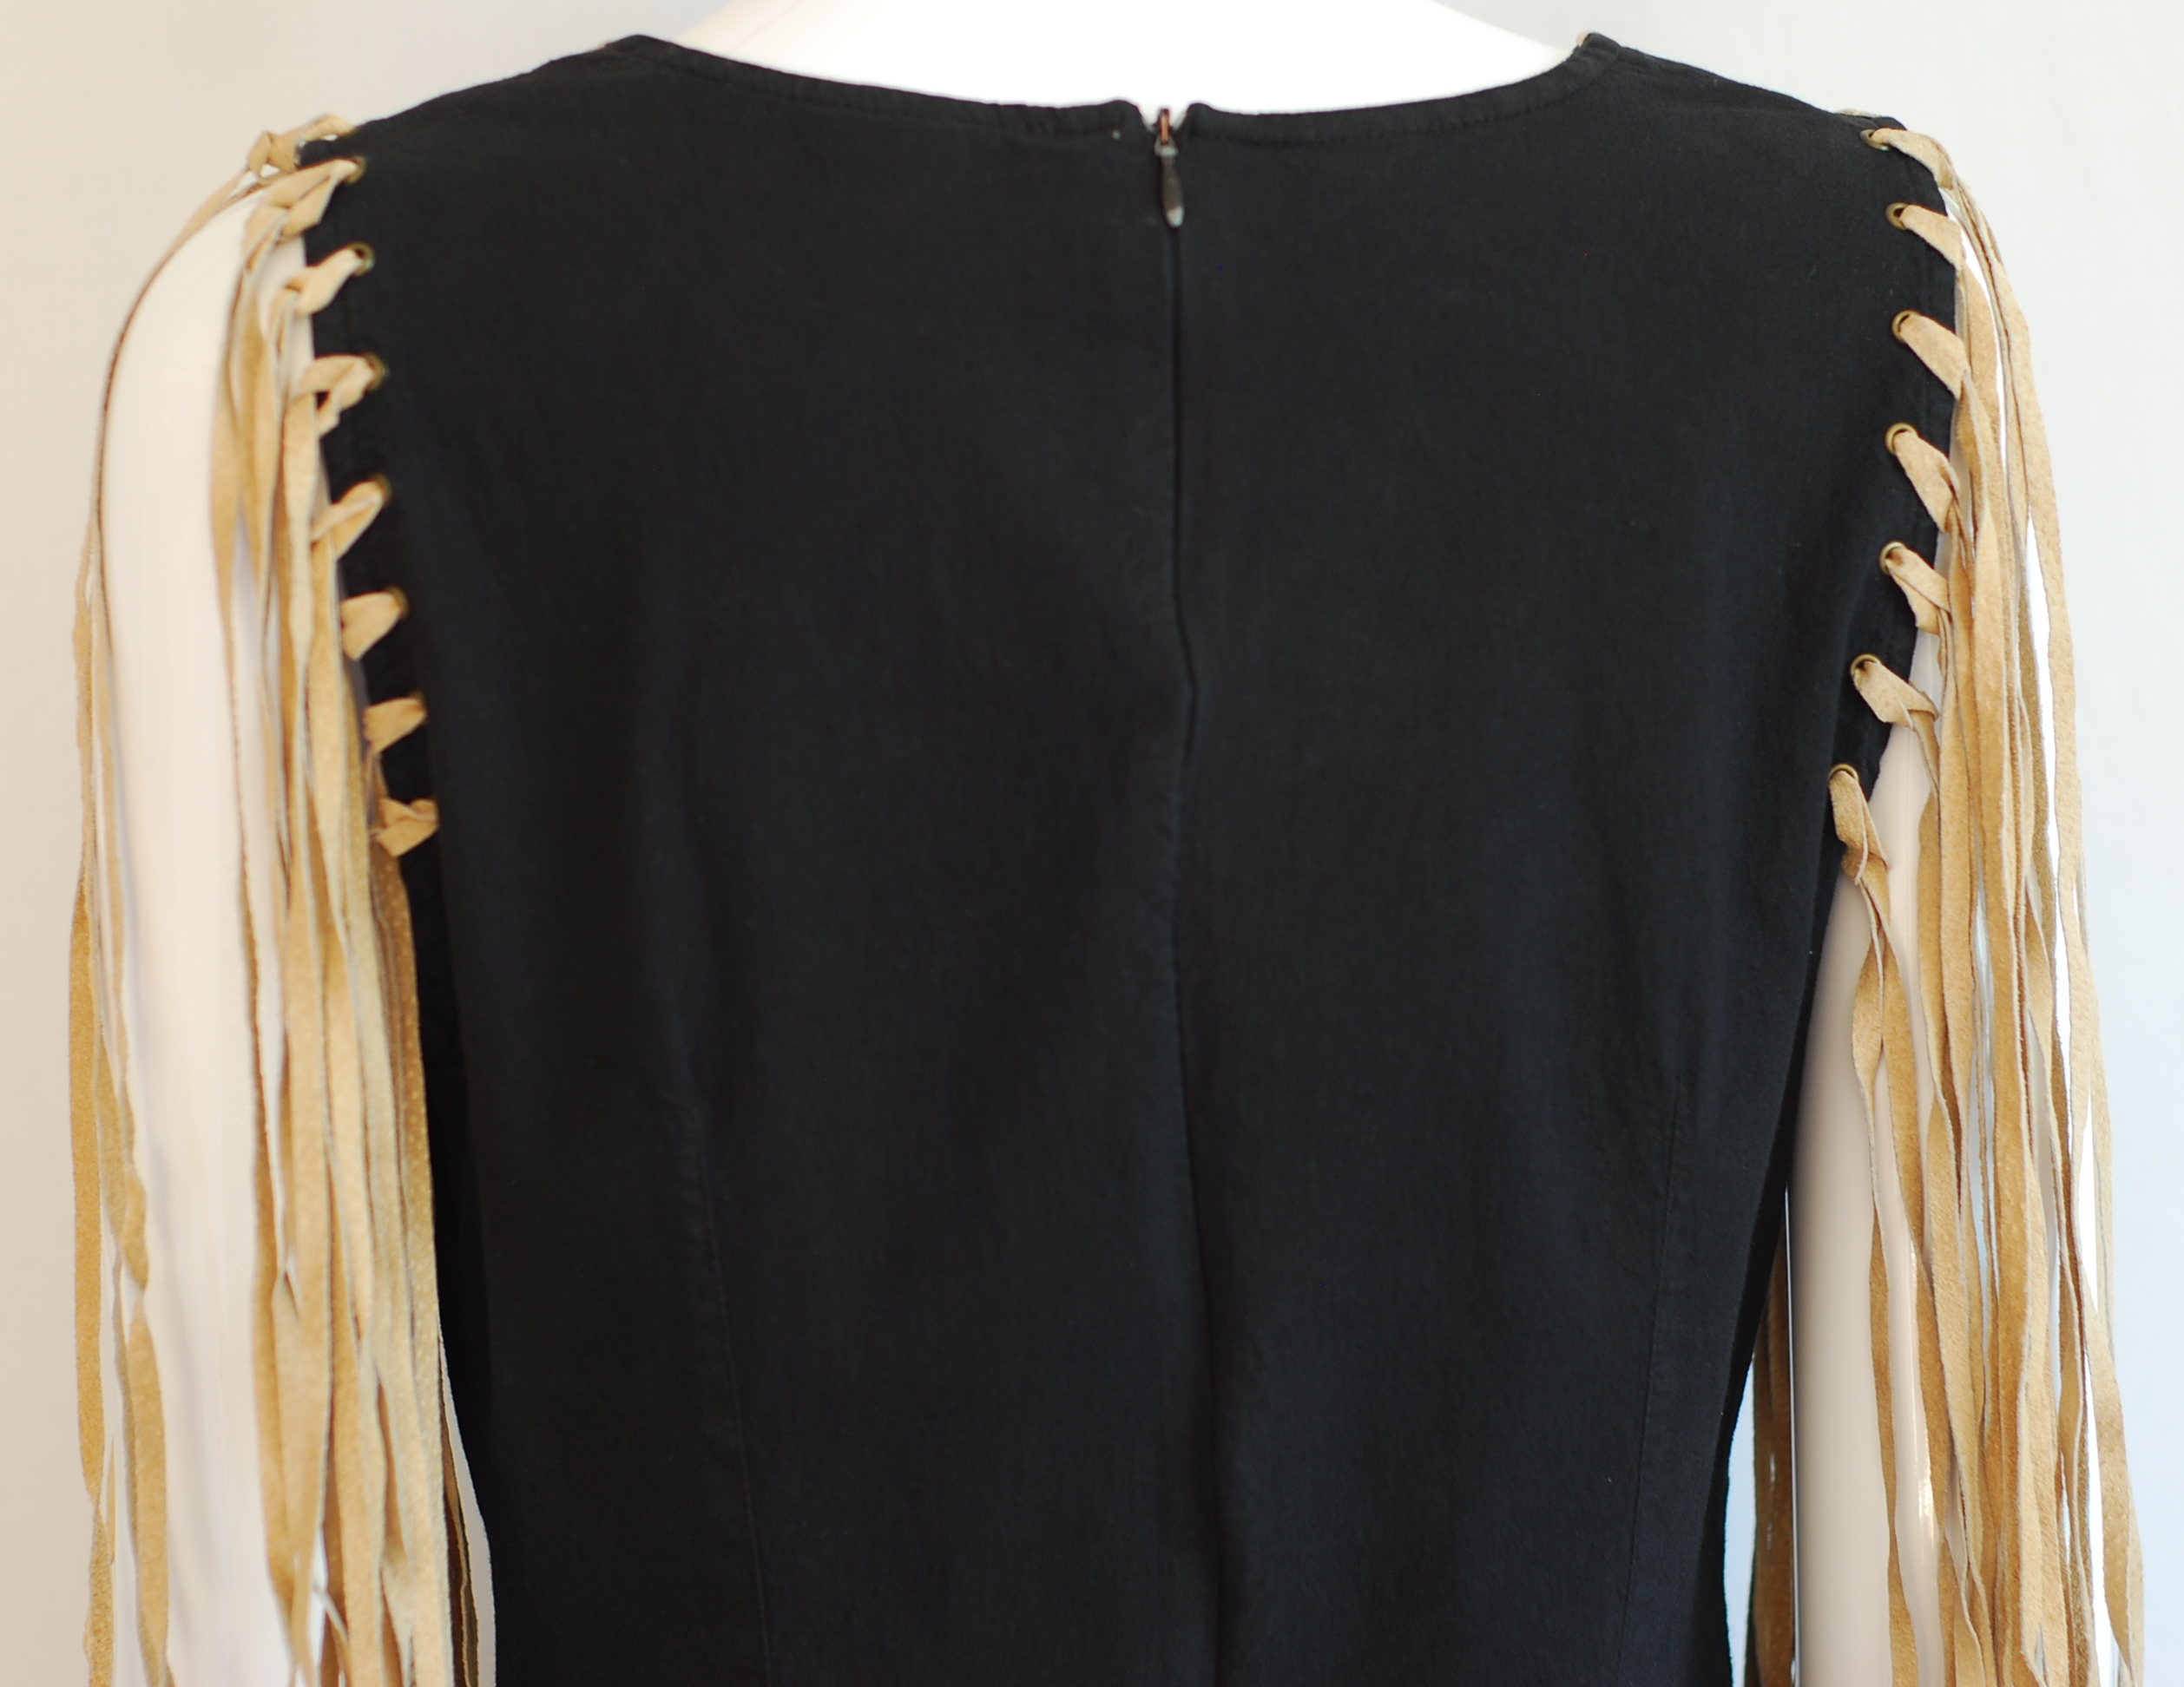 Bianca Maria Caselli Black Cotton Dress With Leather Fringes ...